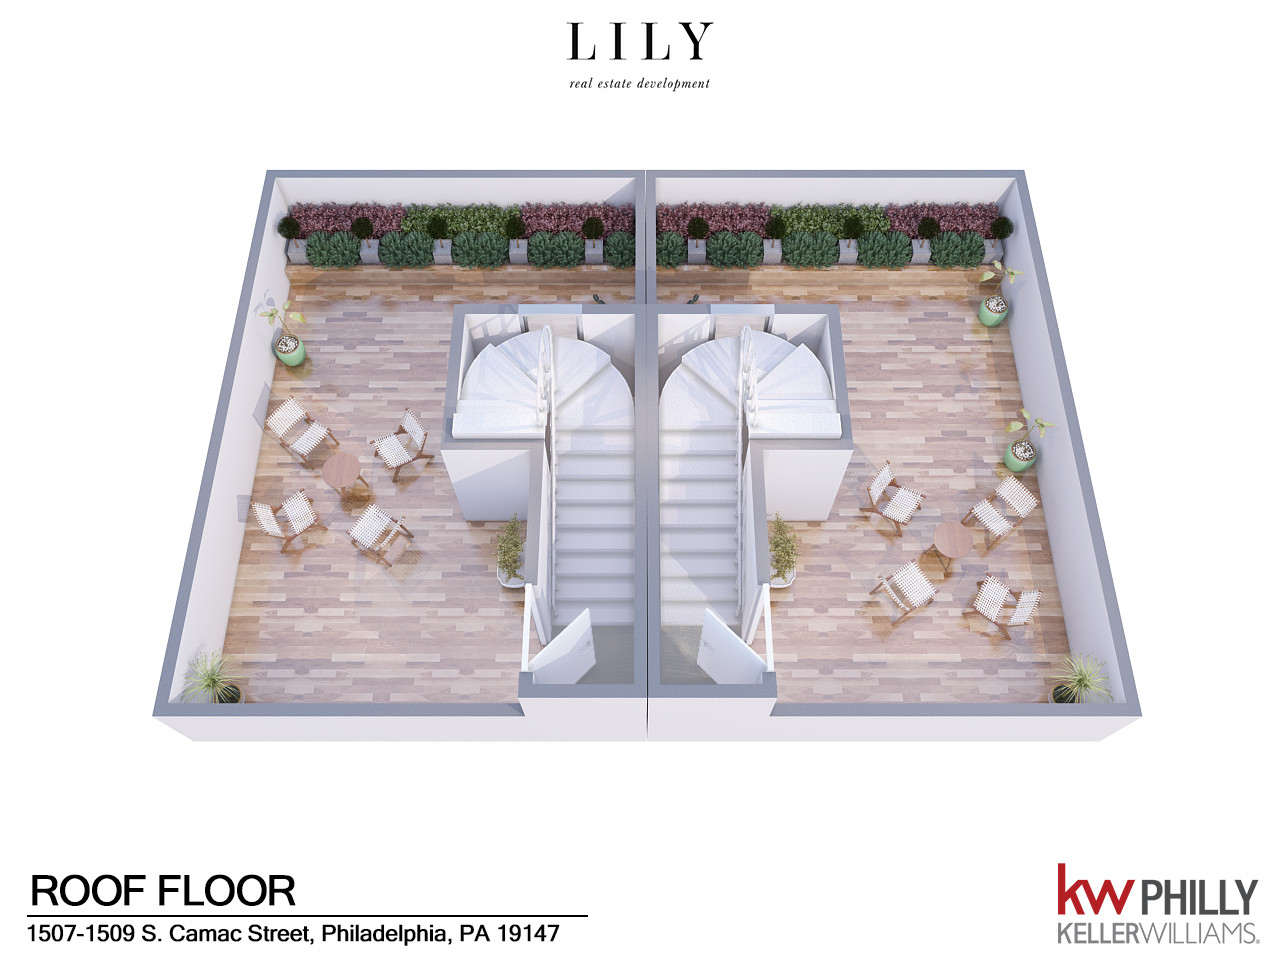 Roof Deck Plans, White.jpg